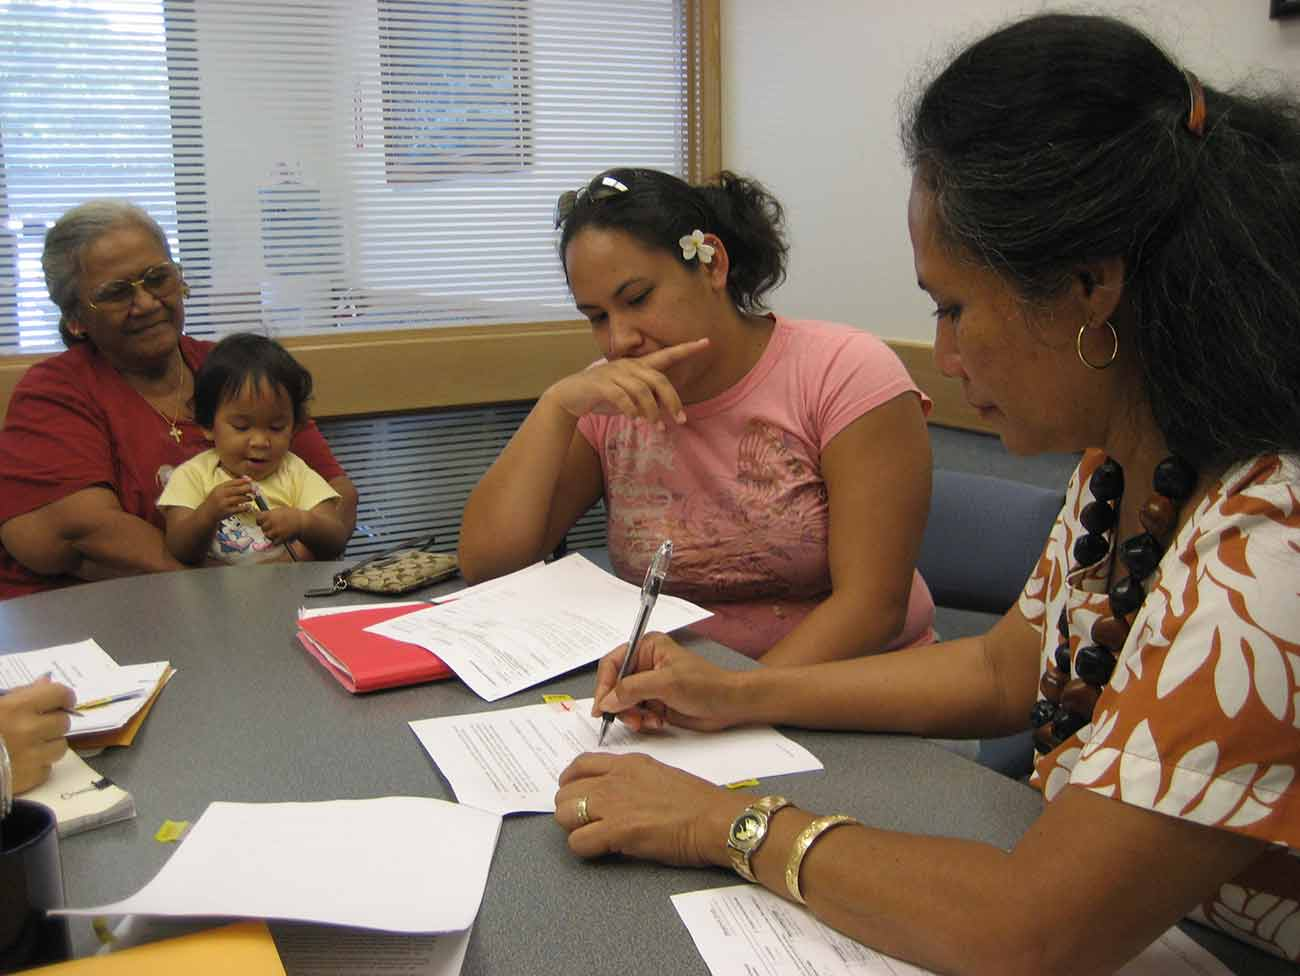 3 women seated at a table filling out paperwork